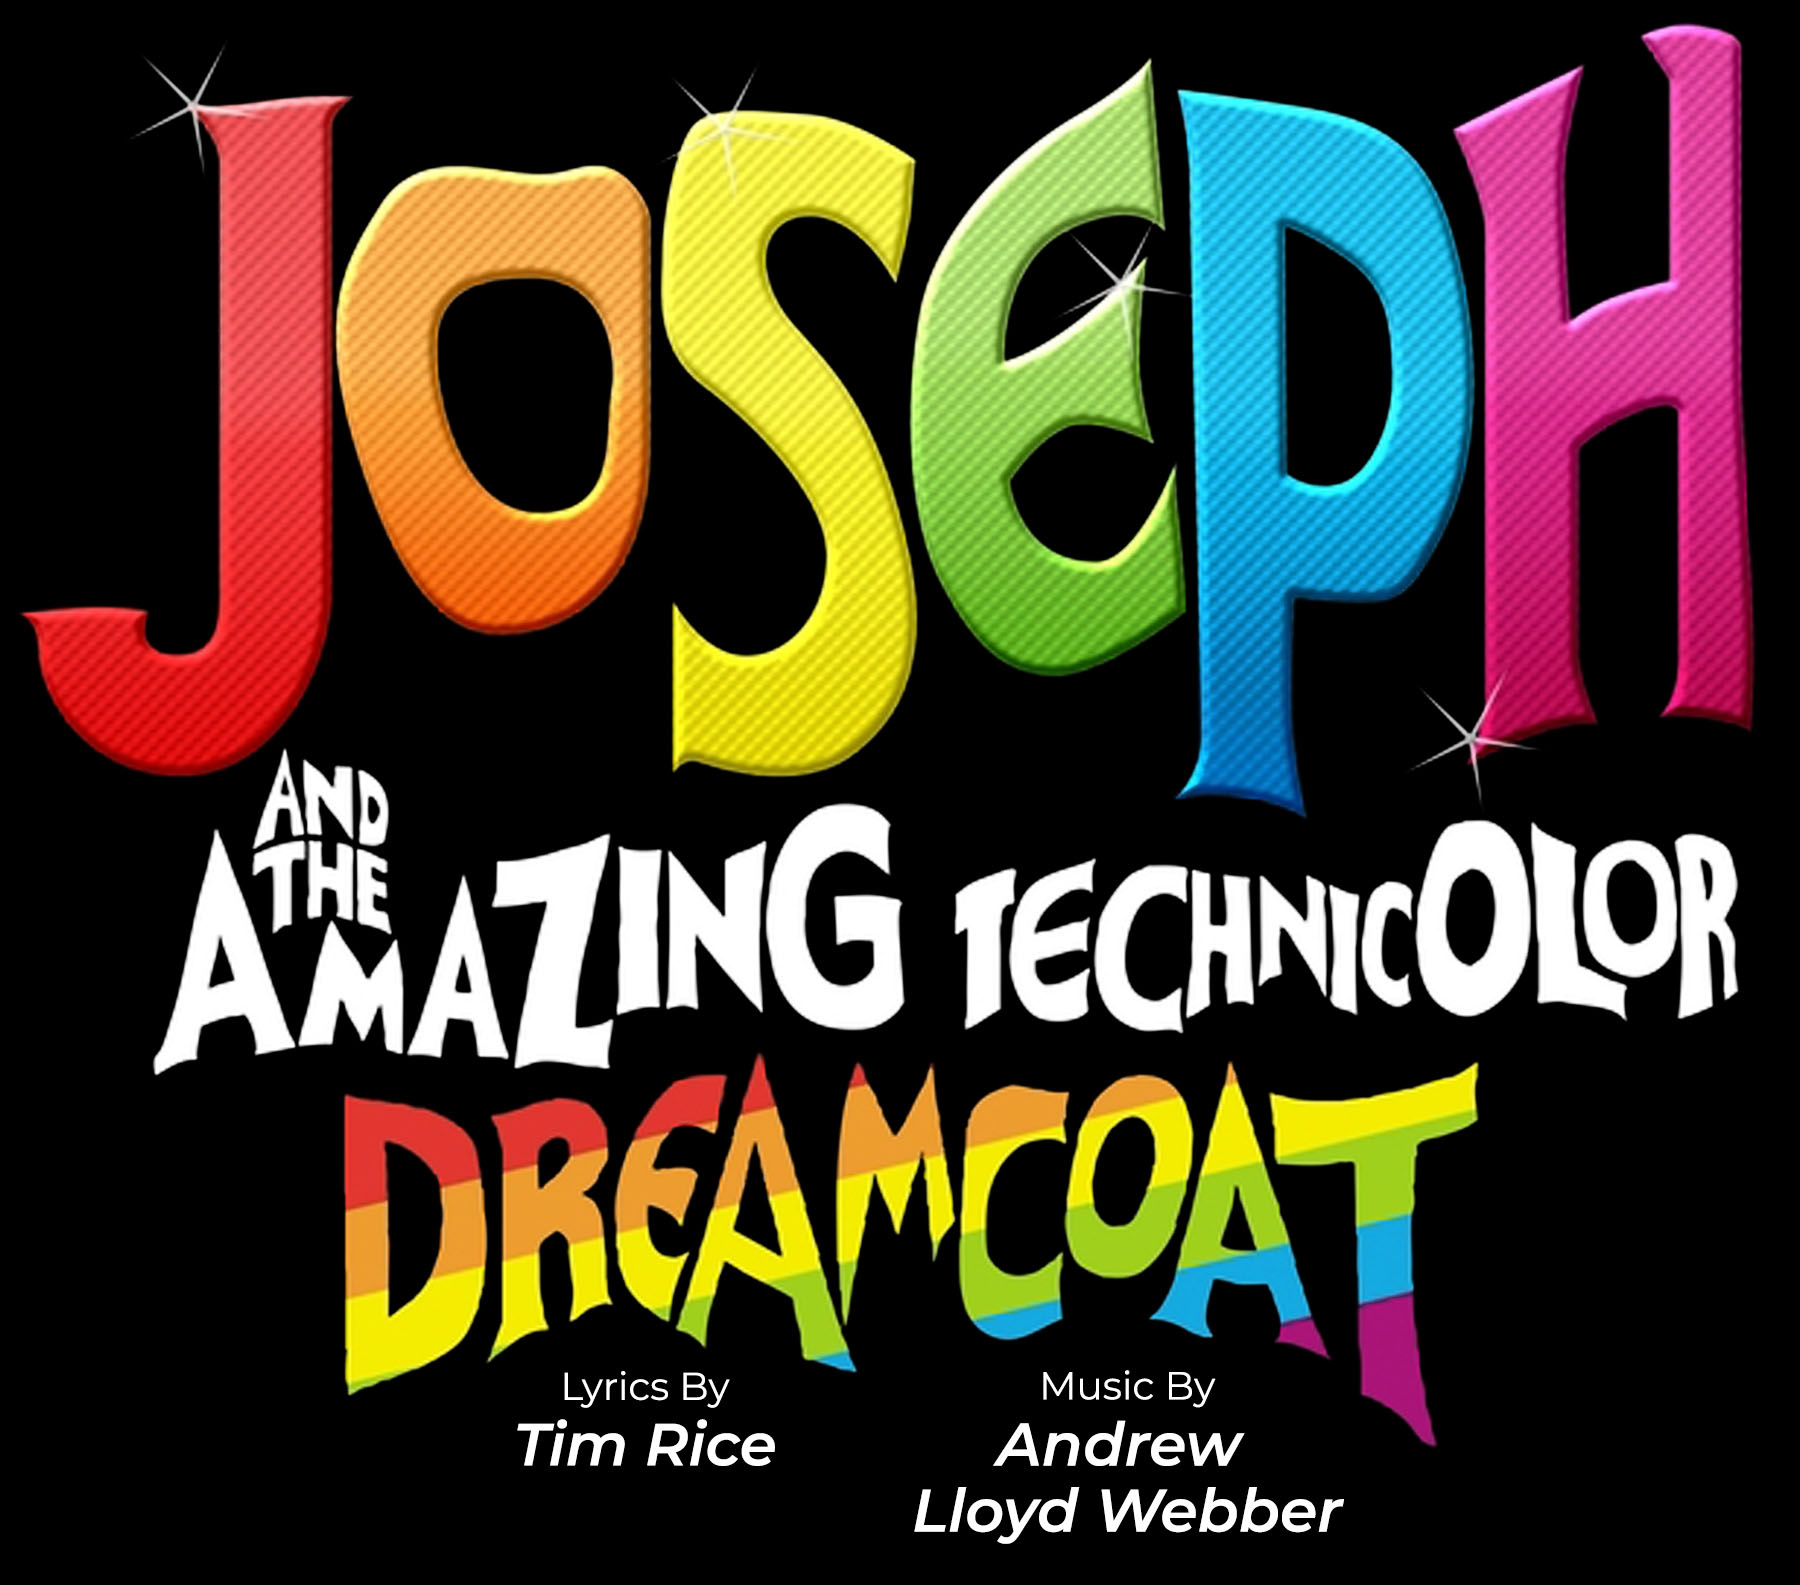 Joseph and the Amazing Technicolor Dreamcoat banner image